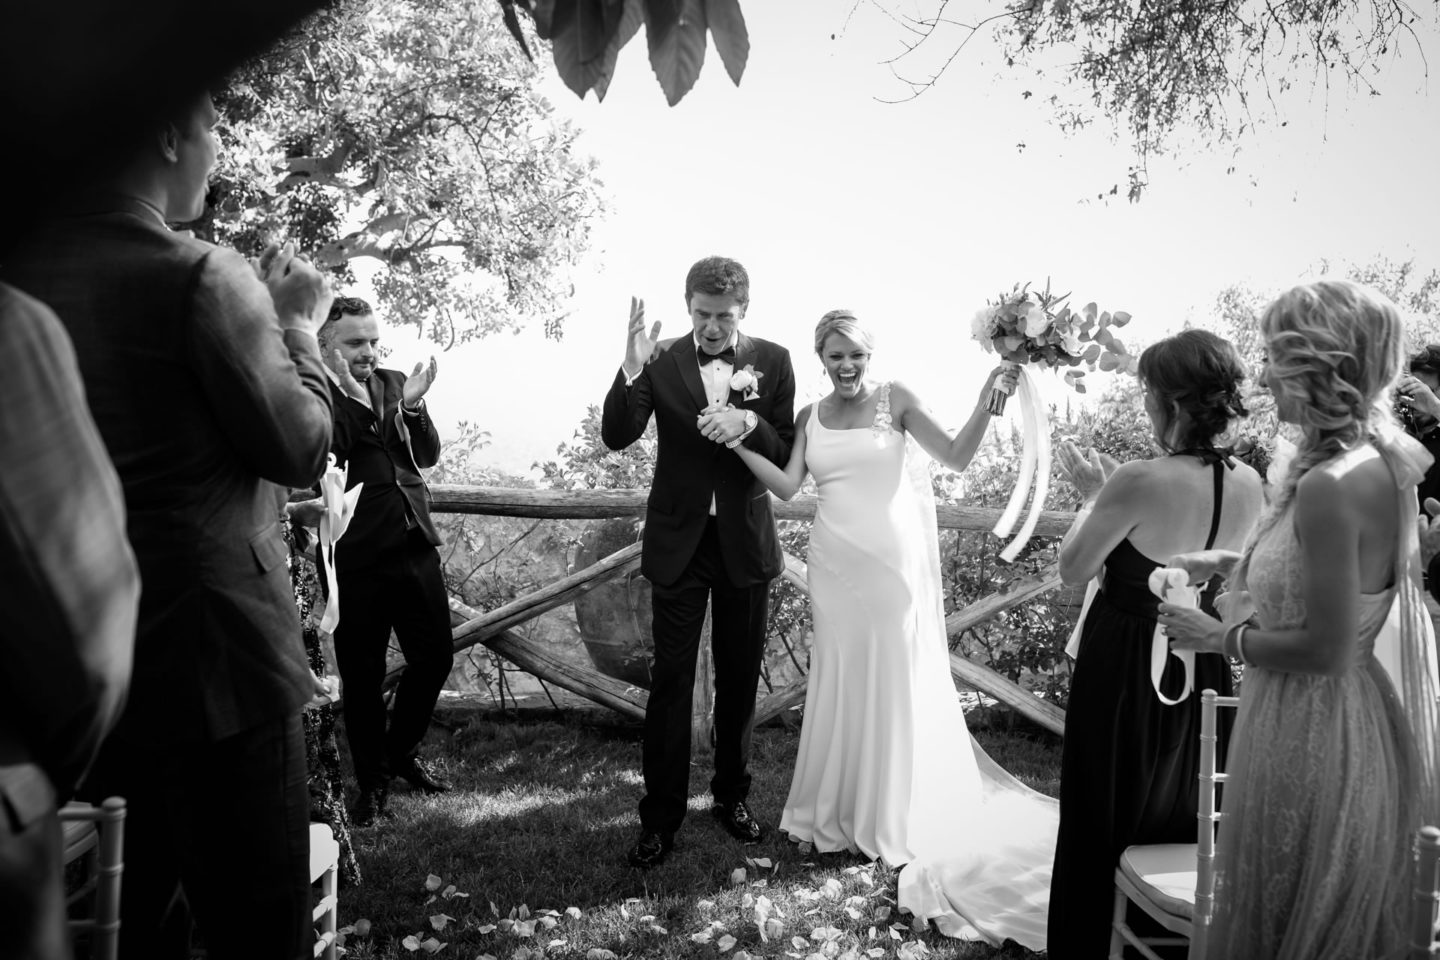 Best Wishes - 28 :: Wedding in Positano. Sea and love :: Luxury wedding photography - 27 :: Best Wishes - 28